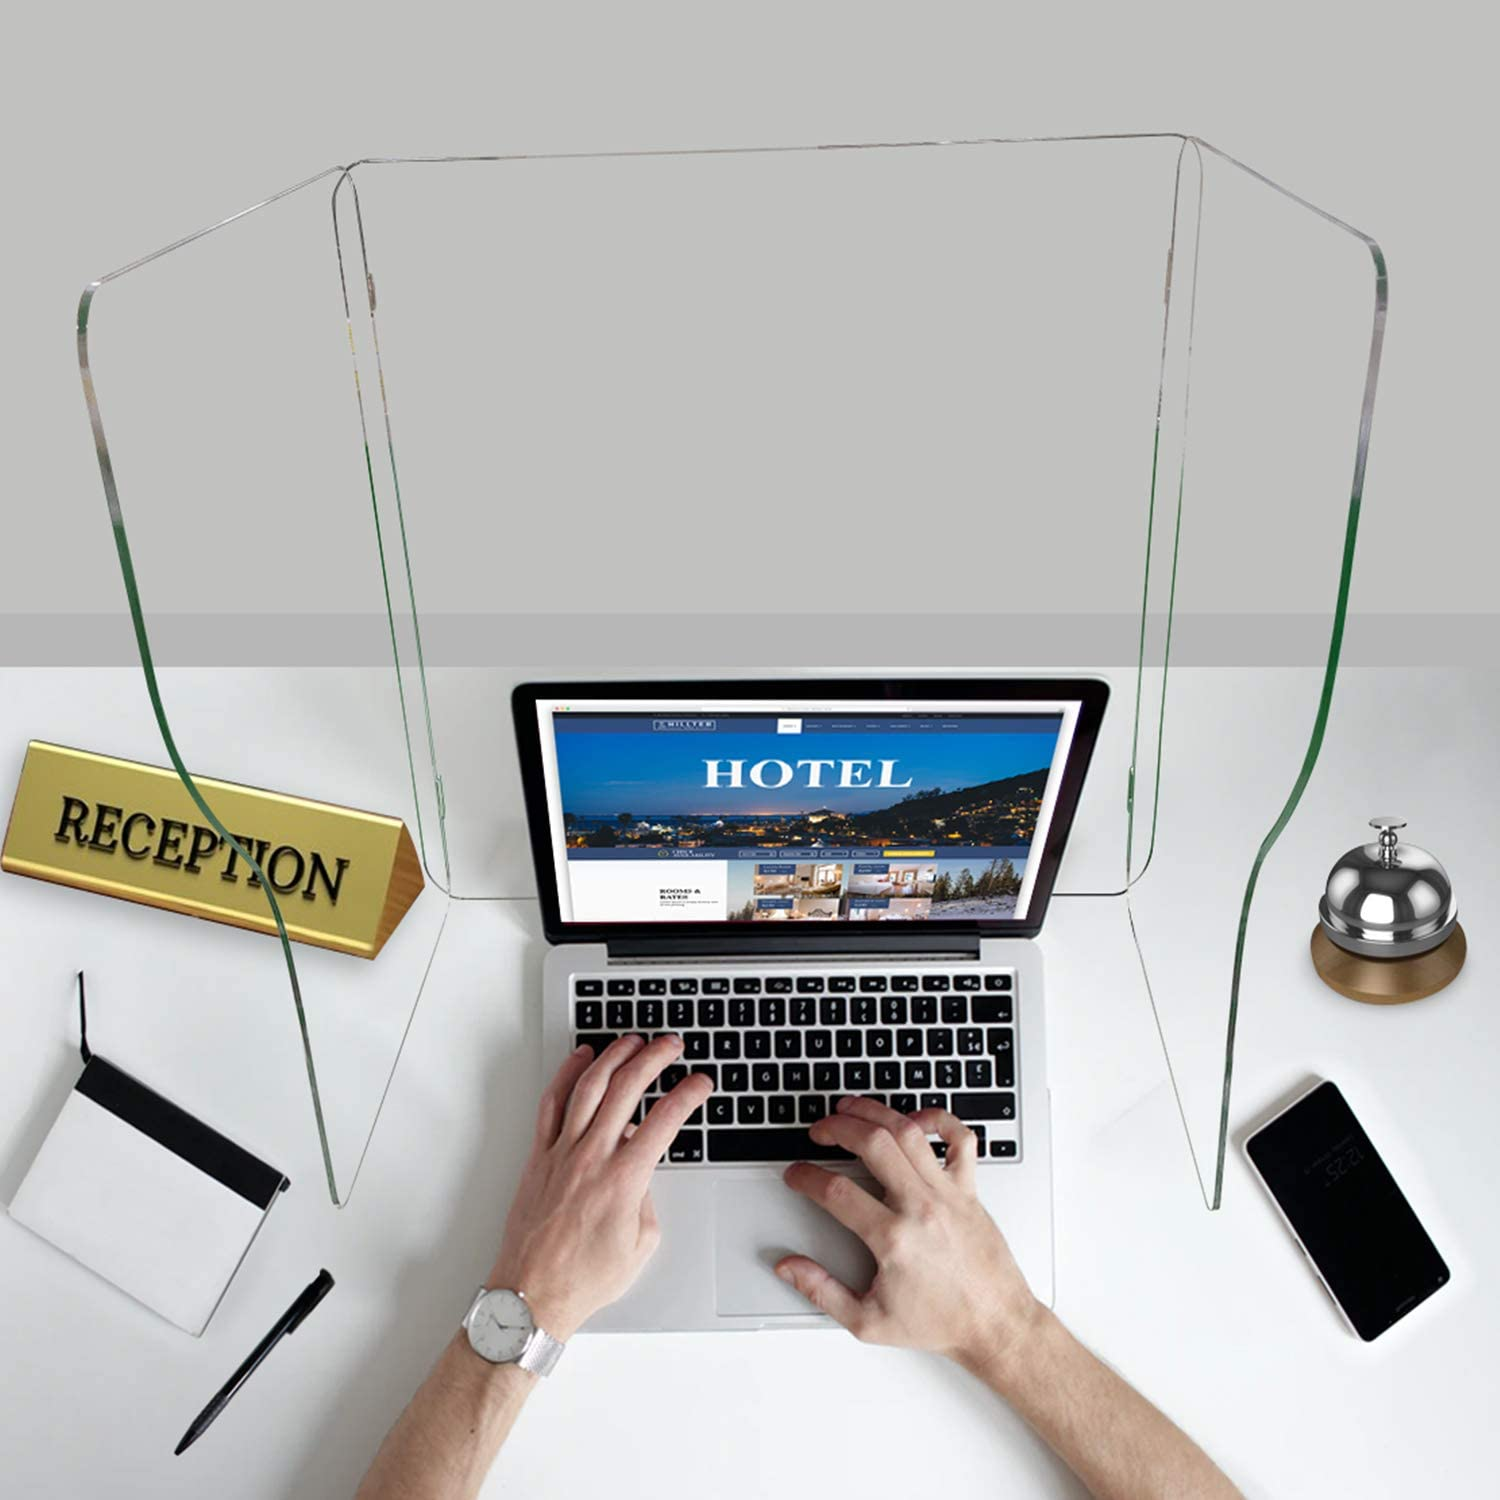 Acrylic Protective Desktop Sneeze Guard, Portable Plexiglass Isolation Barrier, Protects Employees Against Cough&Sneeze, Privacy Shield for School Office Desk,Restaurant,Reception (2 x 2 x 2 (FT))